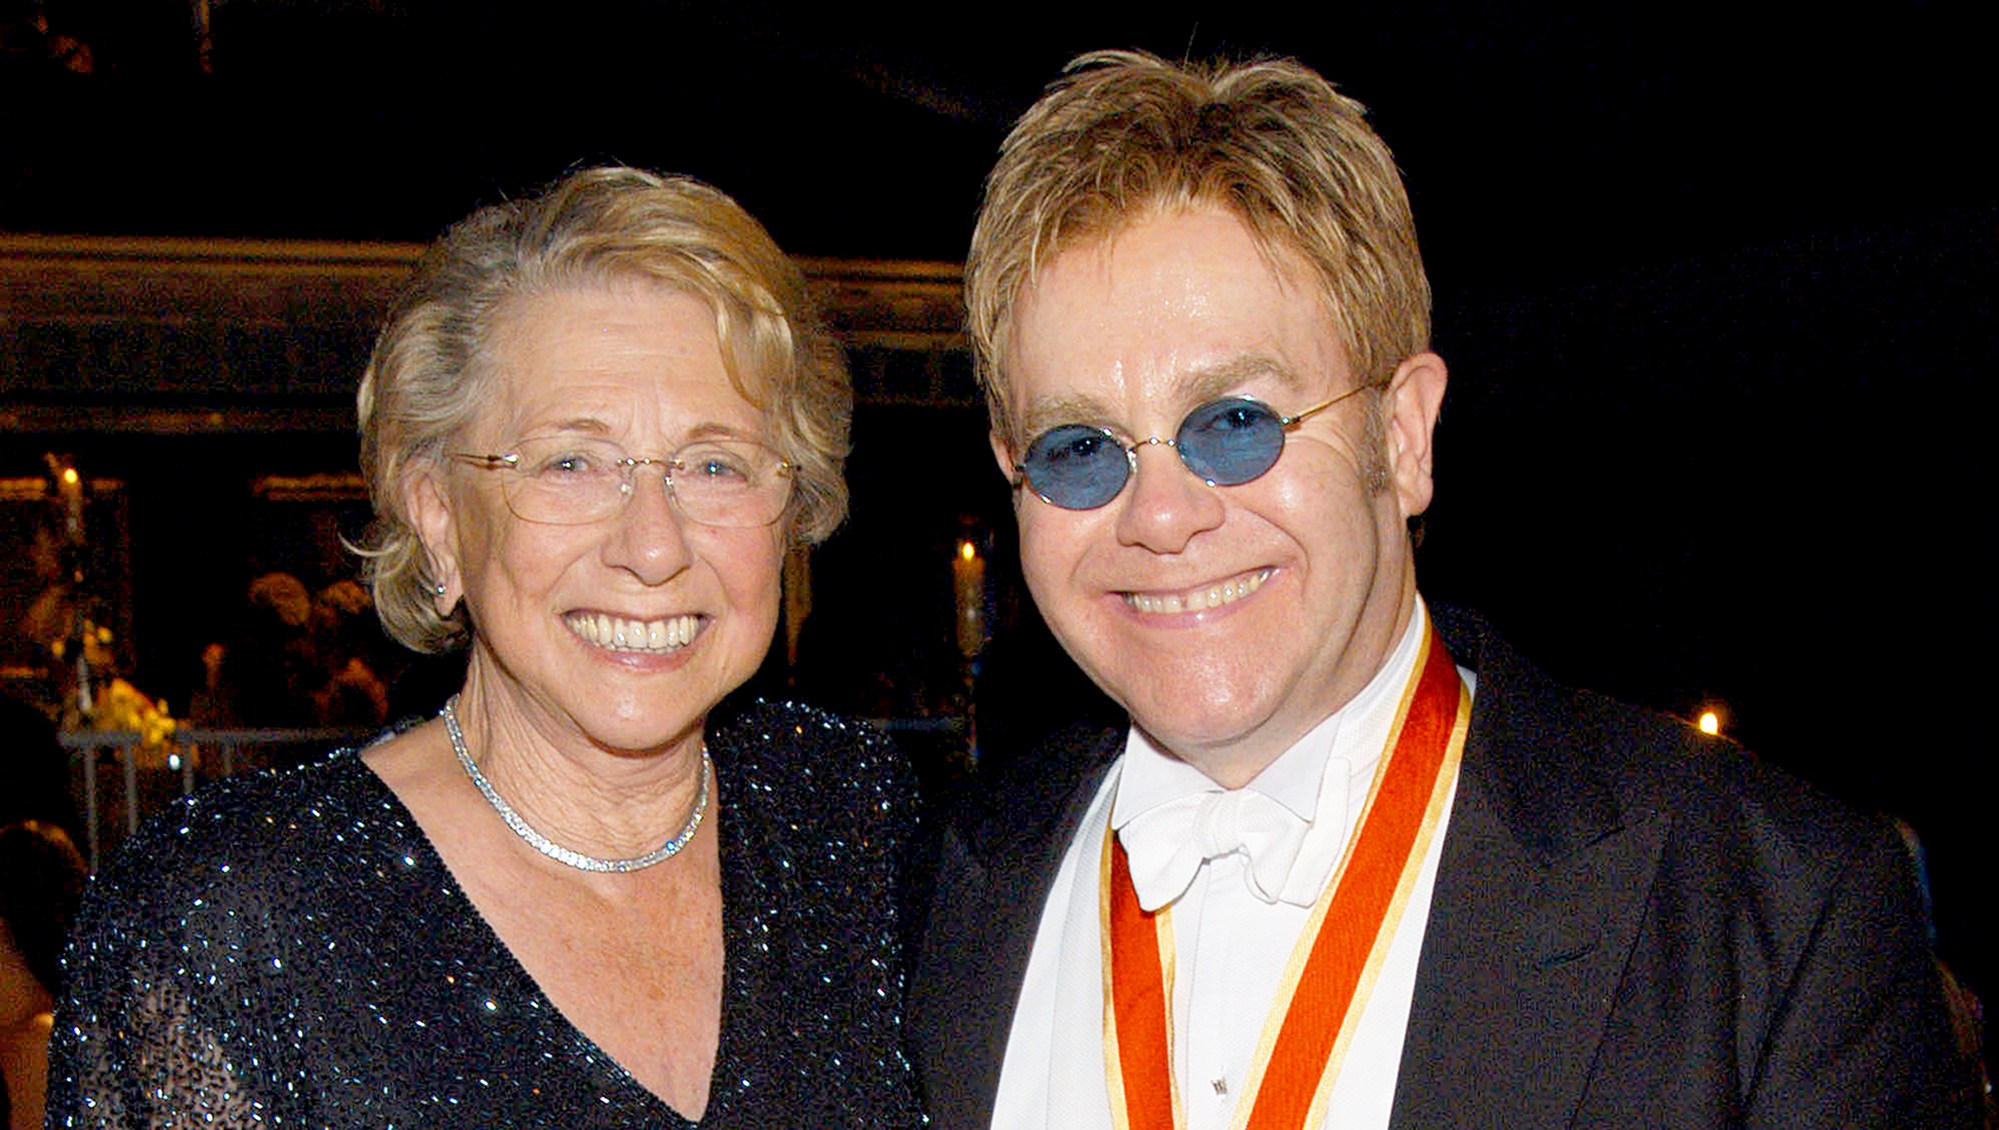 Sir Elton John and his mother Sheila Eileen Farebrother during The Fifth Annual White Tie & Tiara Ball to Benefit the Elton John Aids Foundation in Windsor, England, United Kingdom.